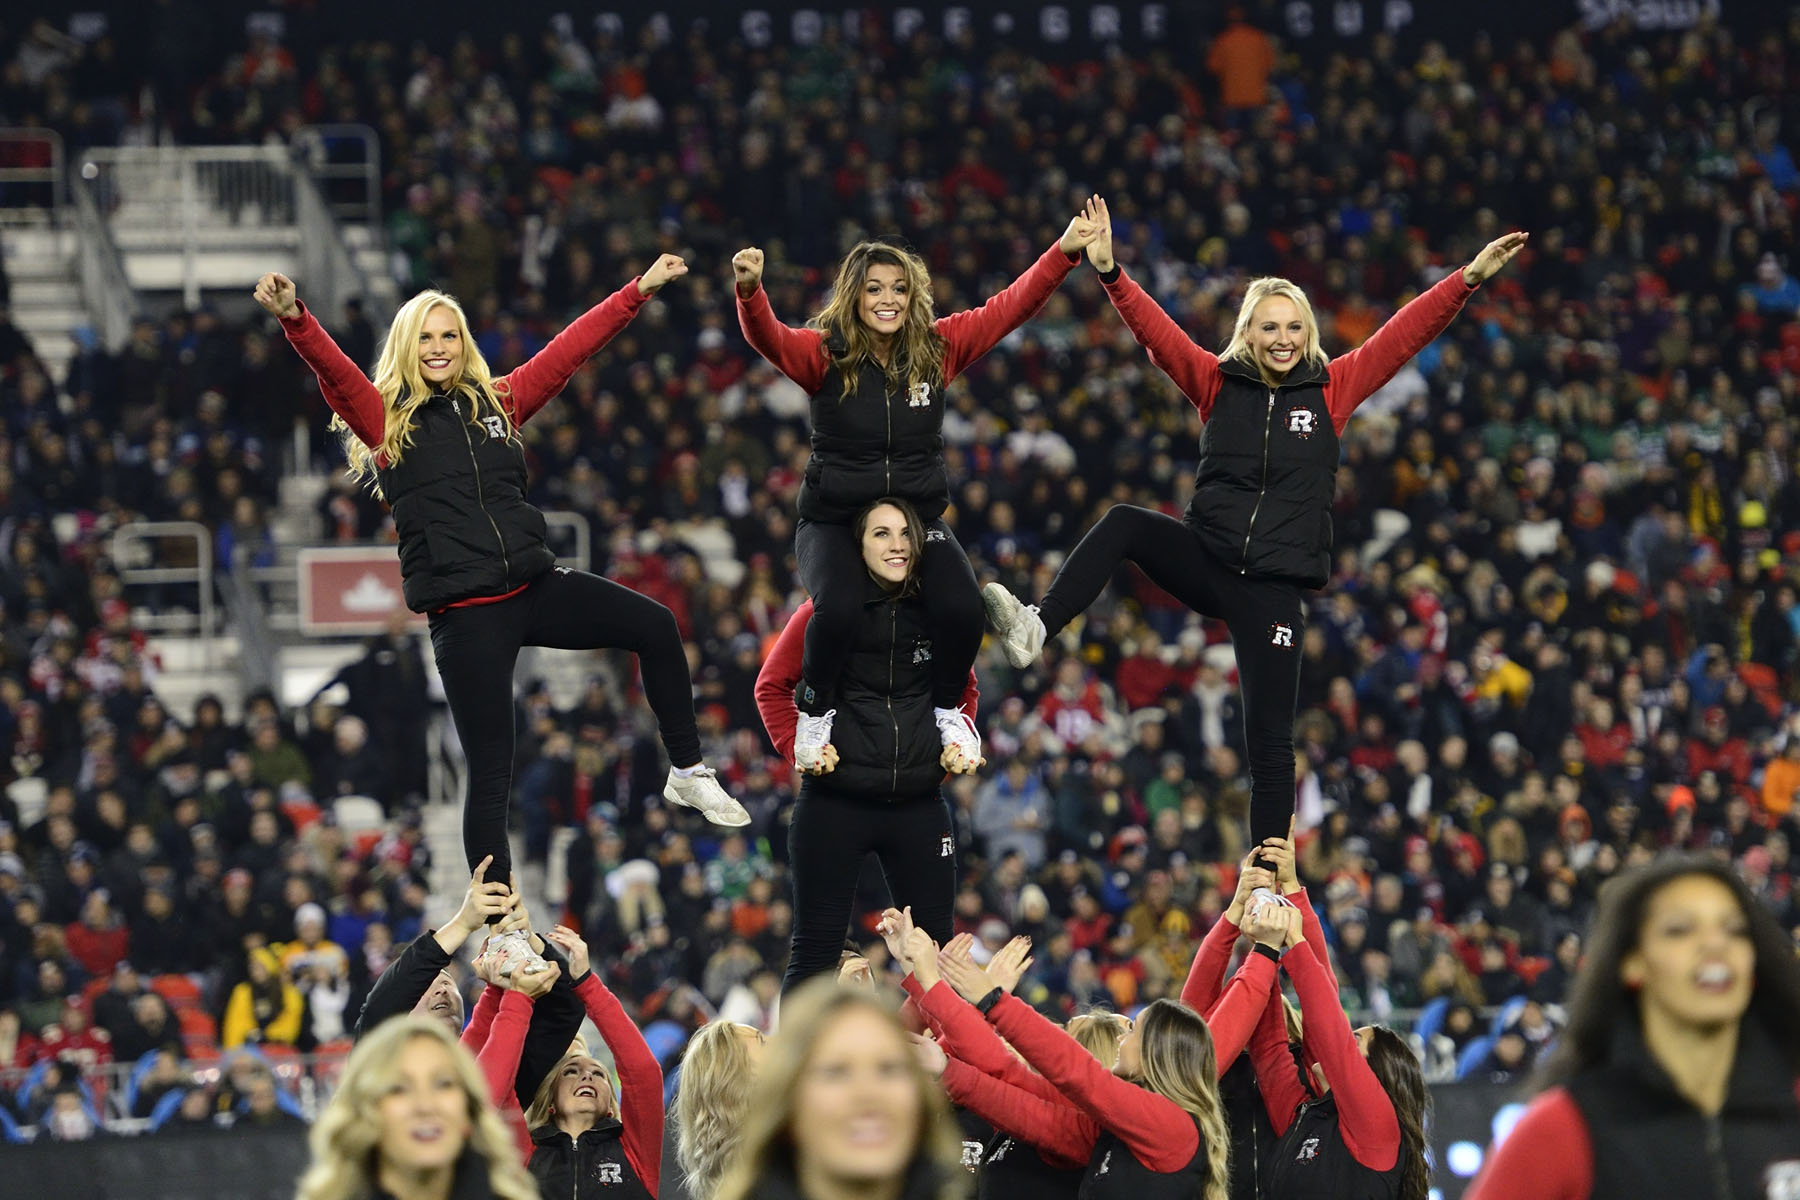 Ottawa REDBLACKS cheerleaders celebrated their team's win.